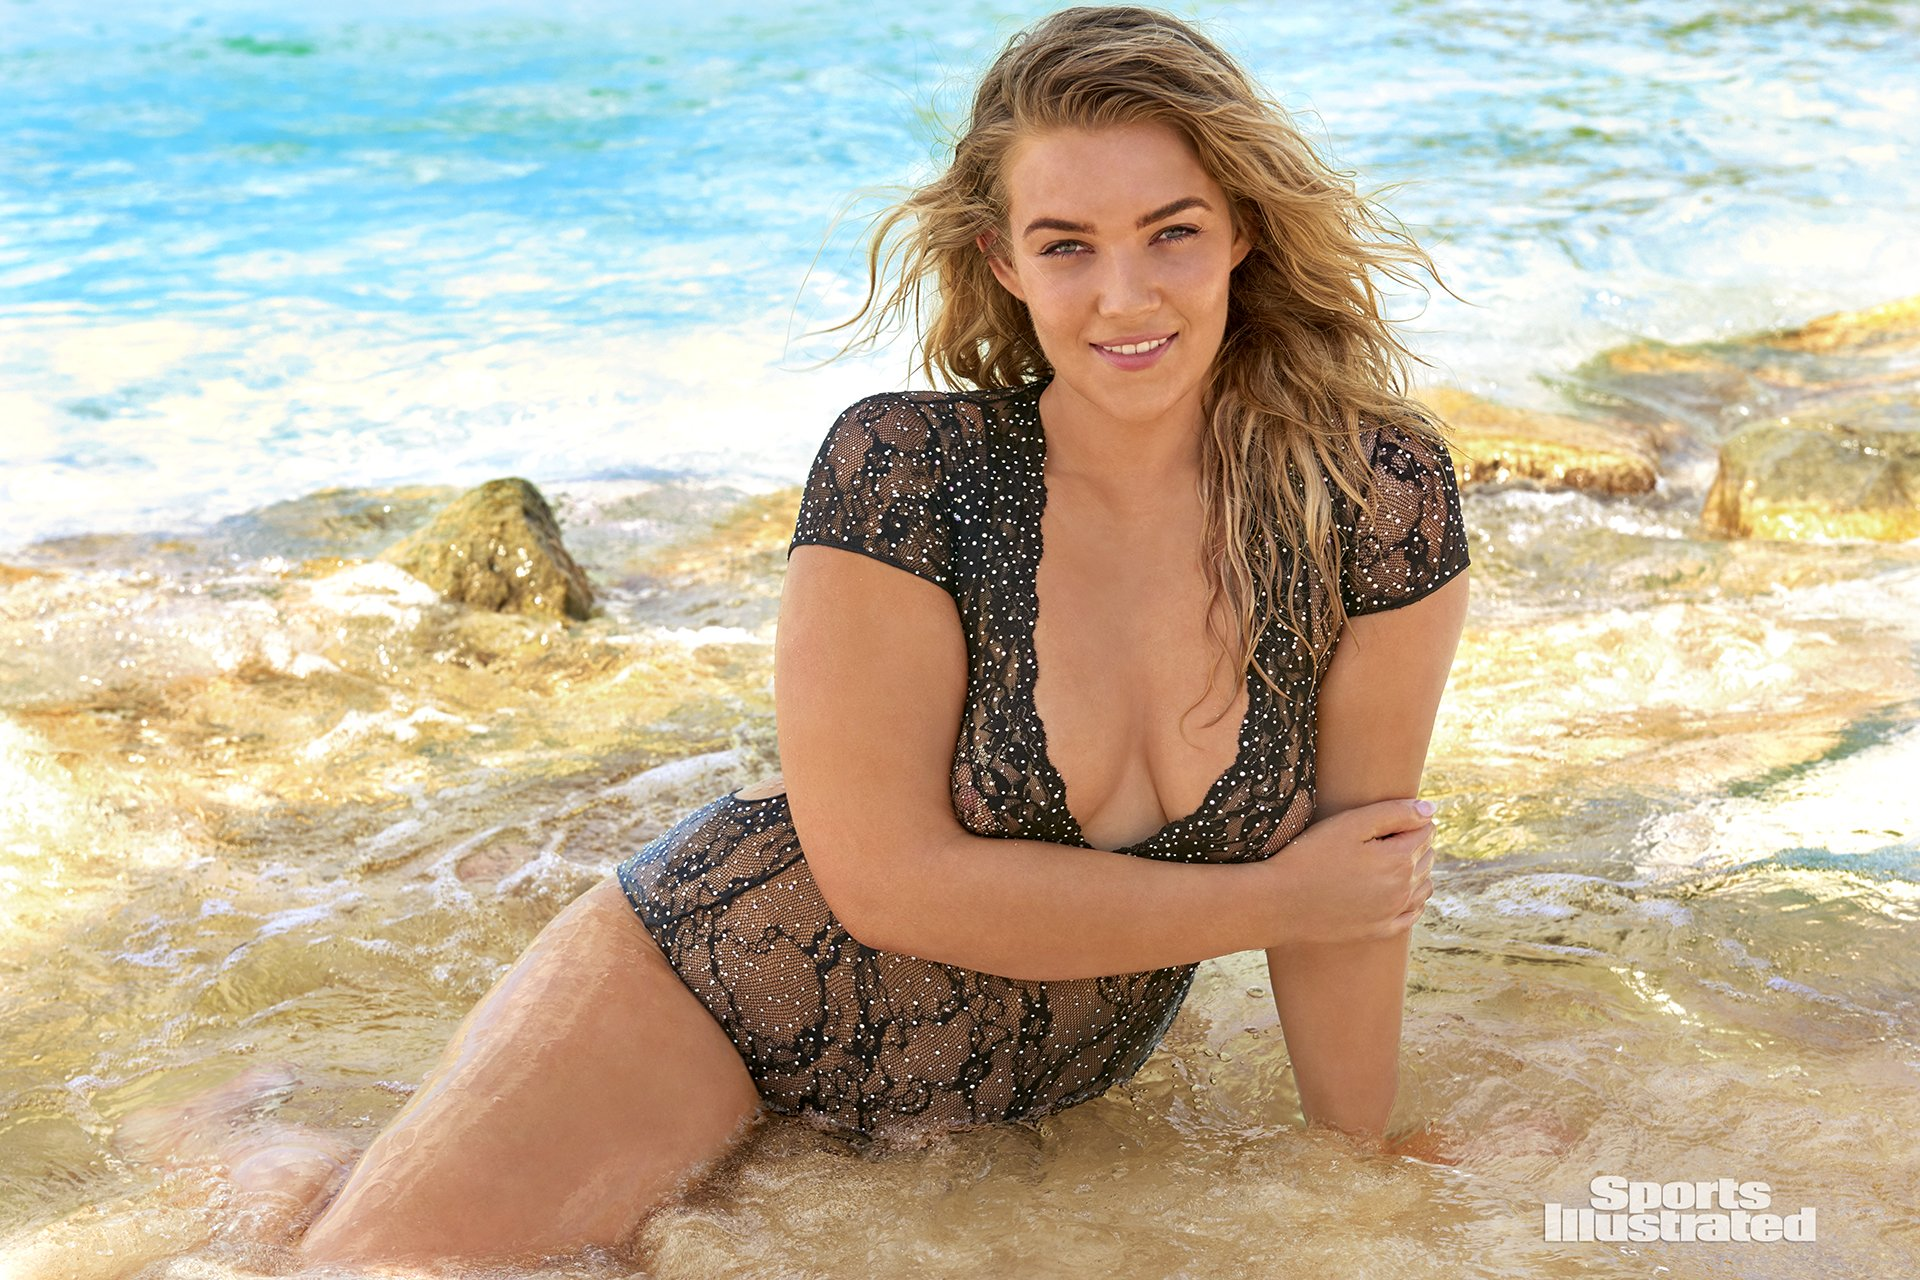 Sports Illustrated Swimsuit Issue 2018013.jpg